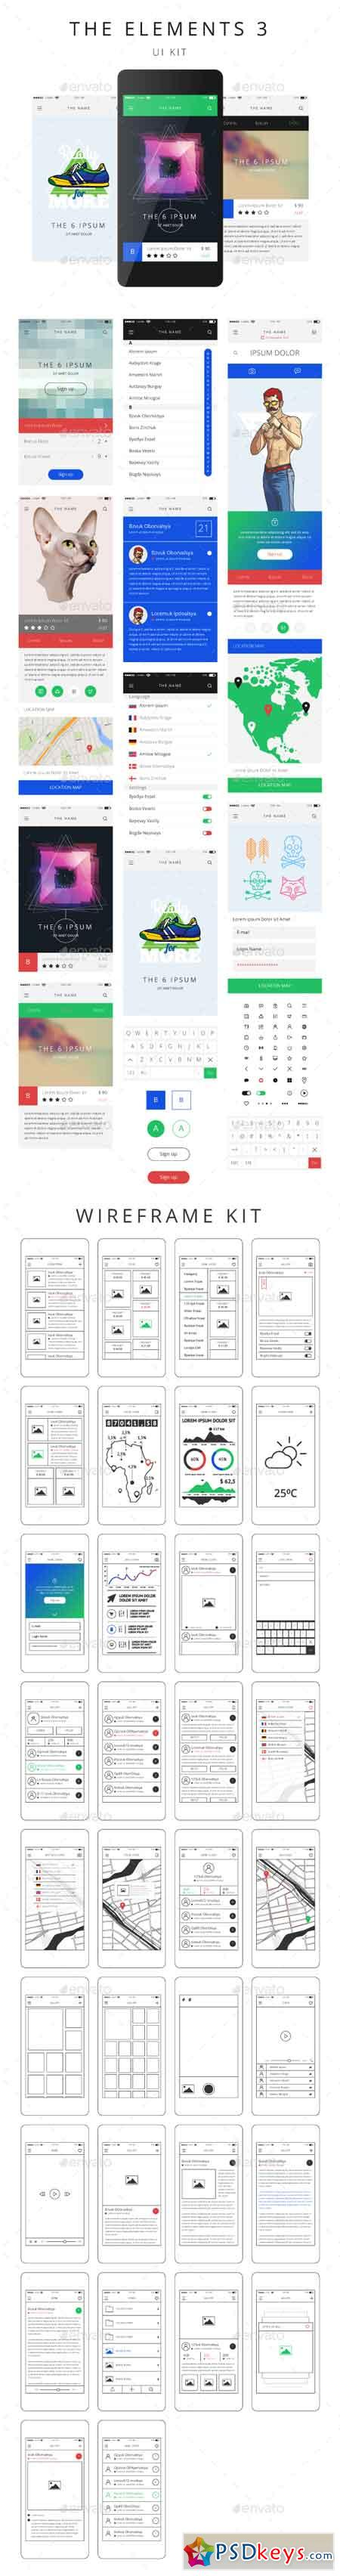 vector phone gui template wireframe ui kit 17397660 free download photoshop vector stock image. Black Bedroom Furniture Sets. Home Design Ideas